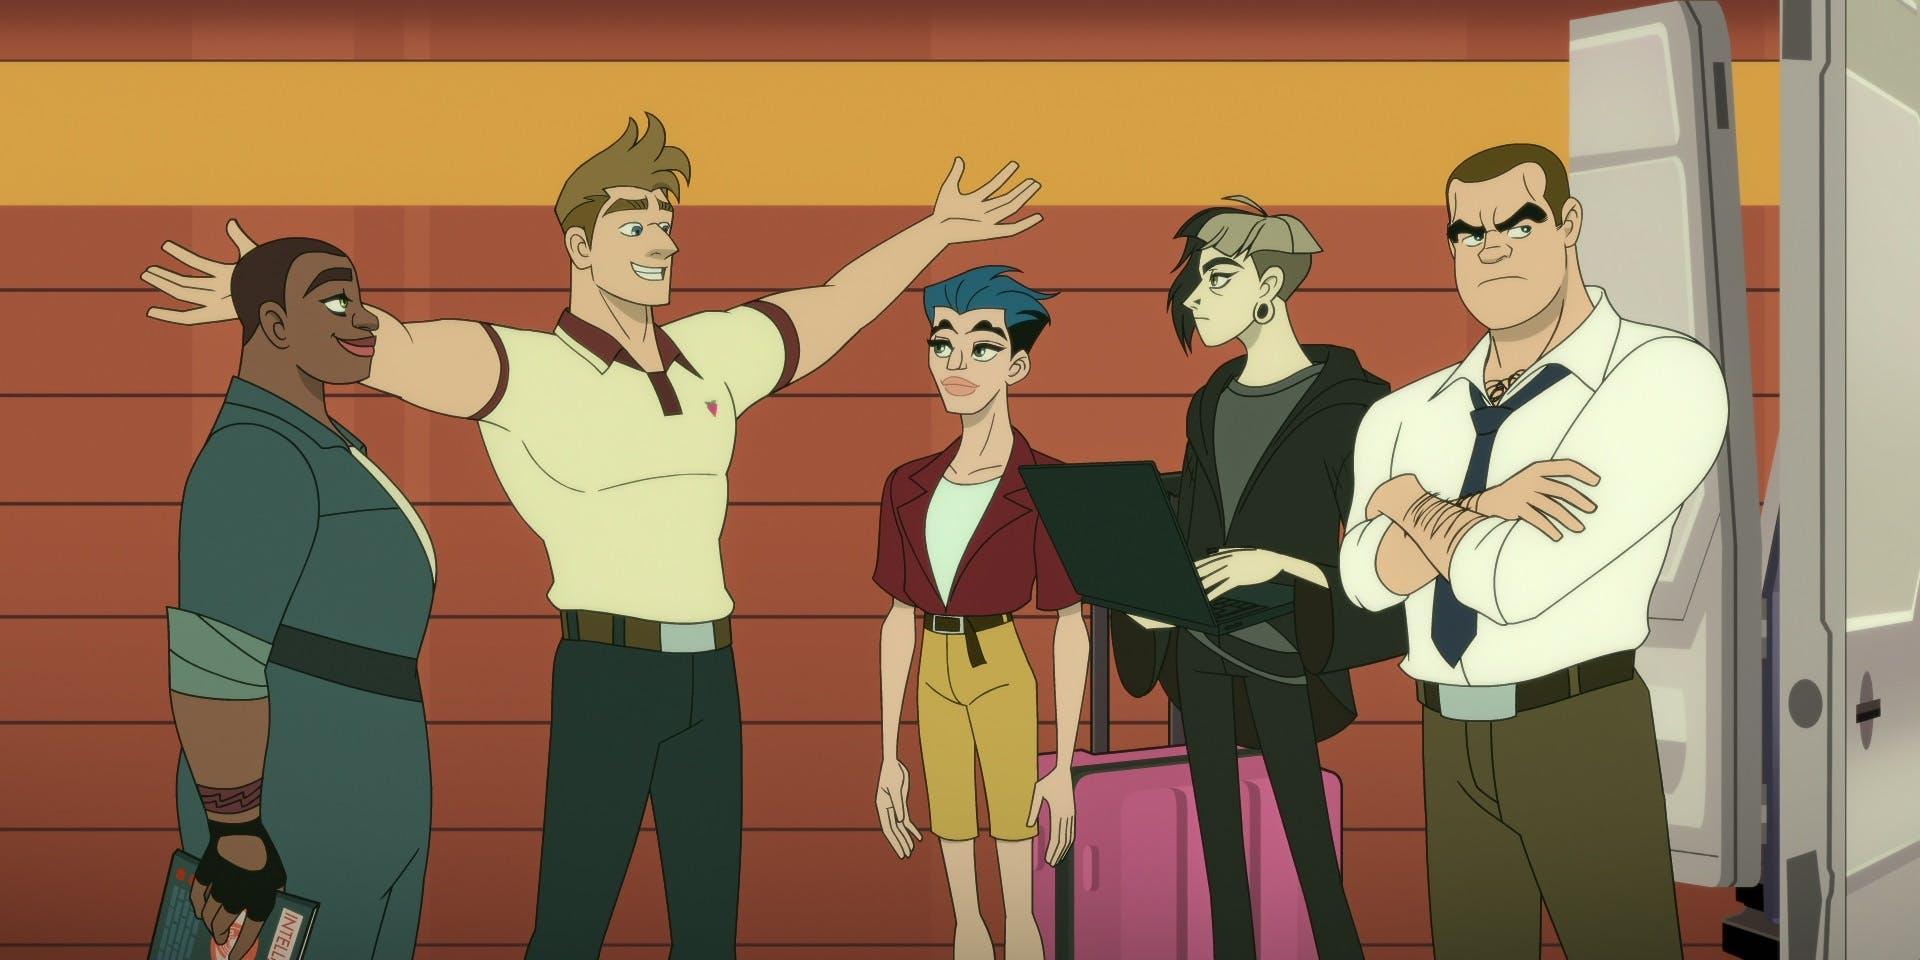 """Netflix's LGBTQ Animated Series """"Q-Force"""" Is Finally Landing This September: Check The Hot Updates"""